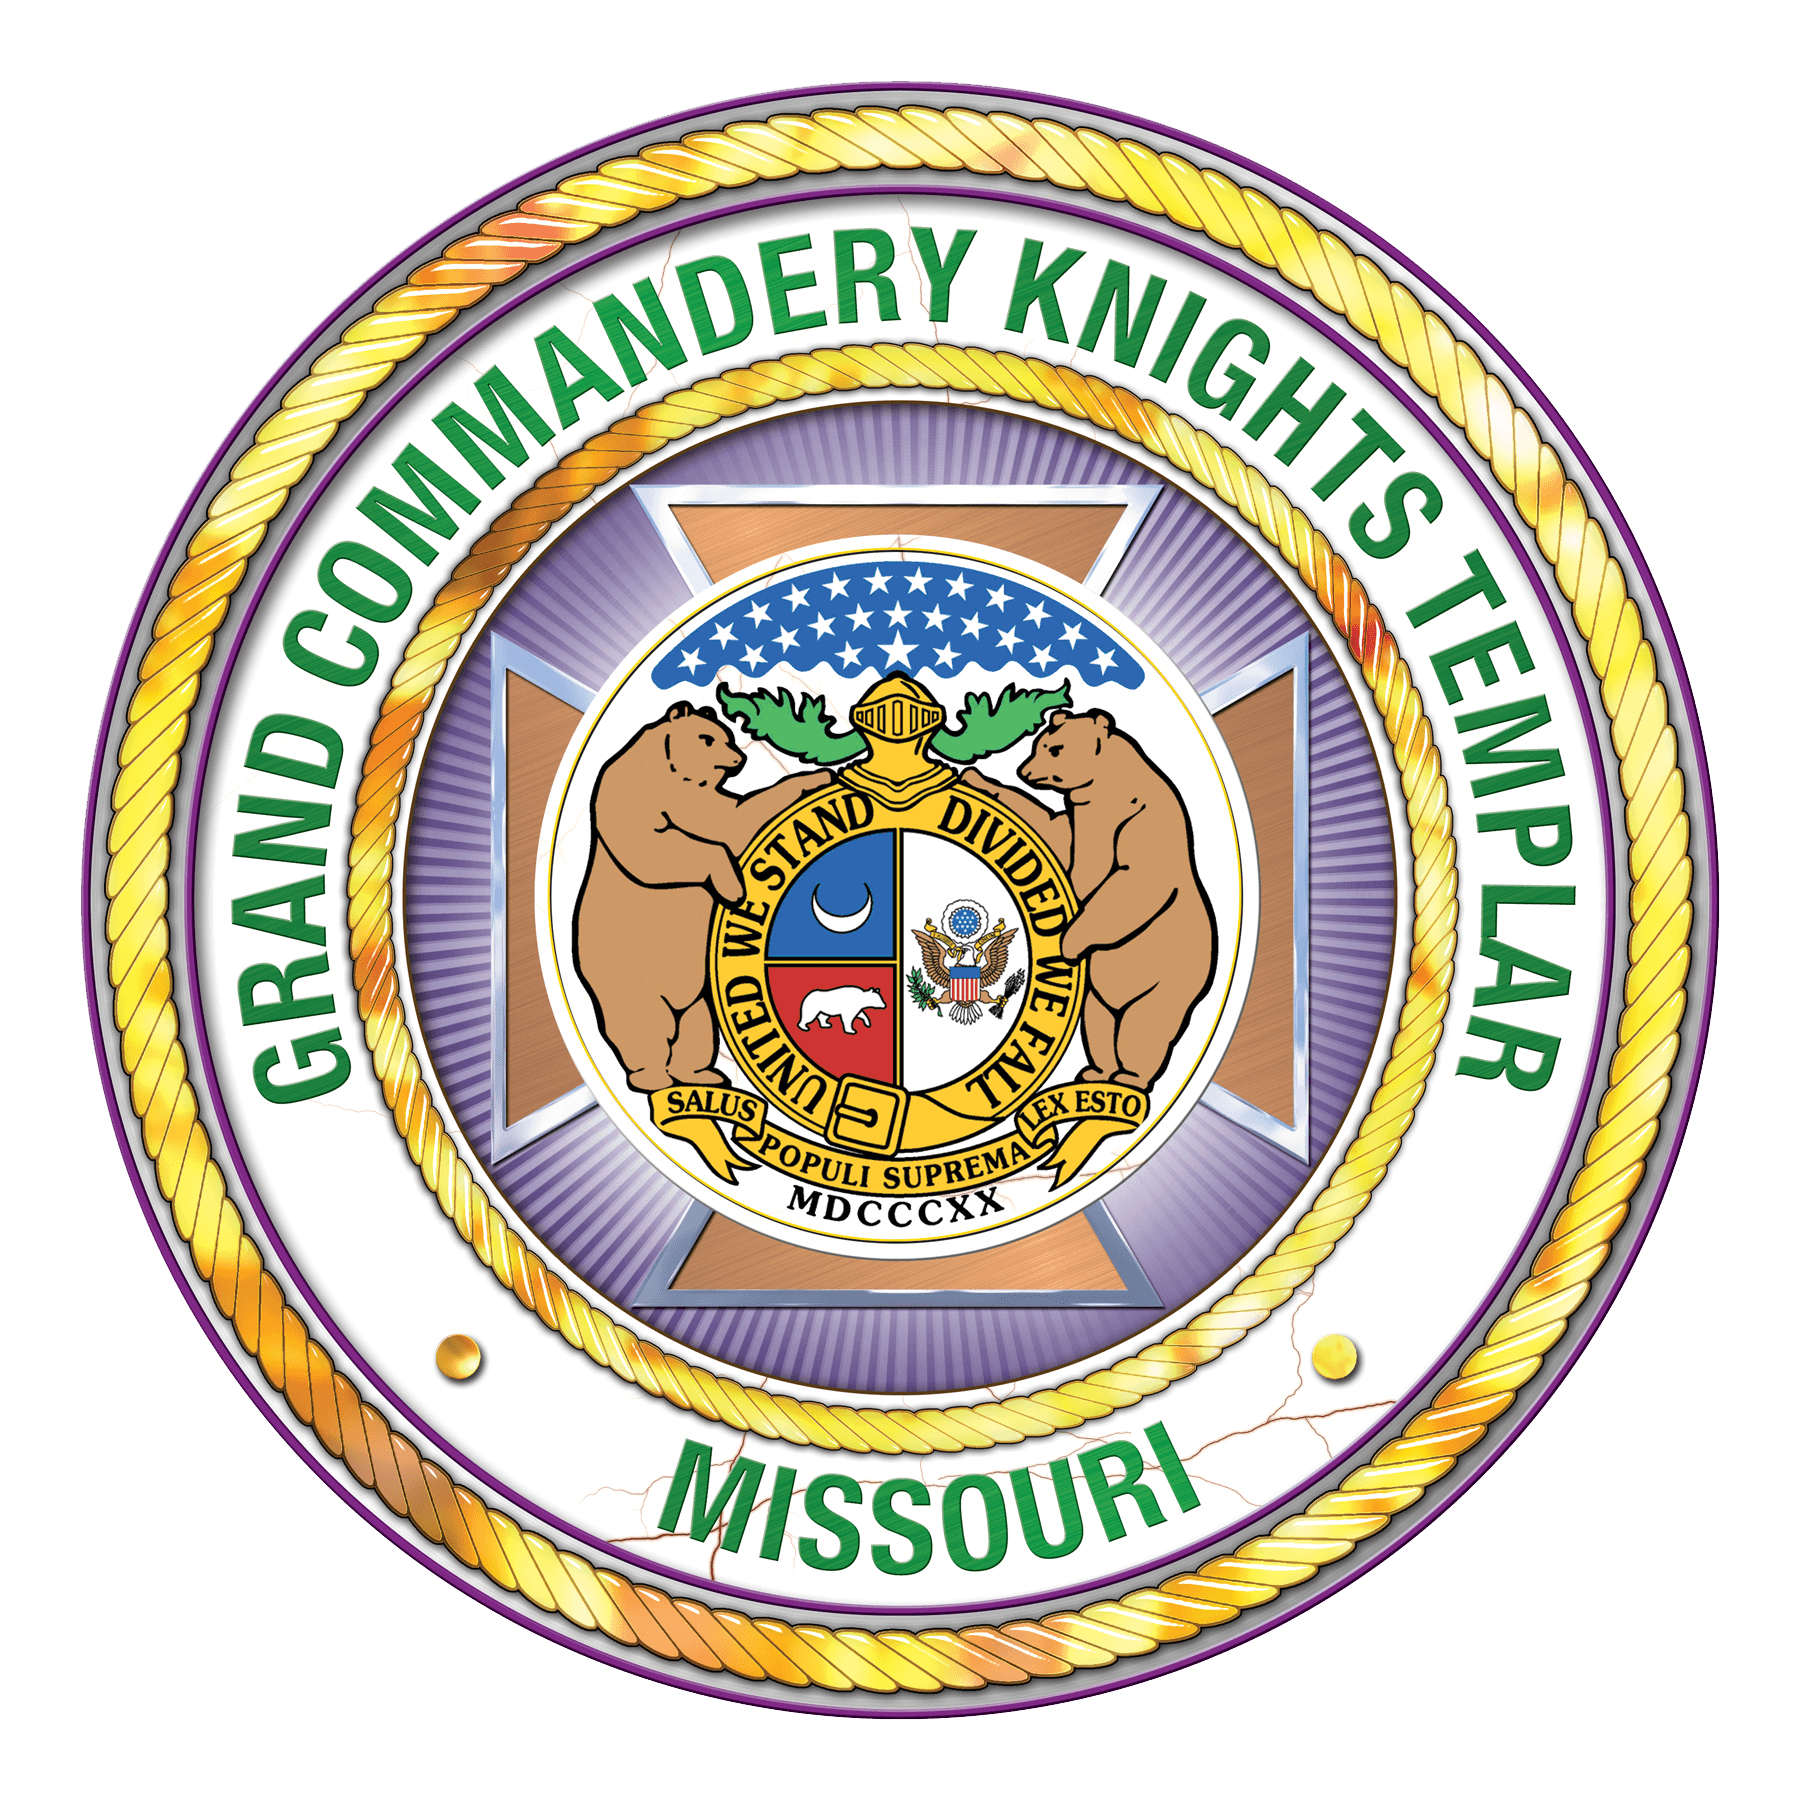 Grand Commander Official Visit - Mtn. Grove Commandery No. 66 @ Mtn Grove Masonic Lodge | Mountain Grove | Missouri | United States